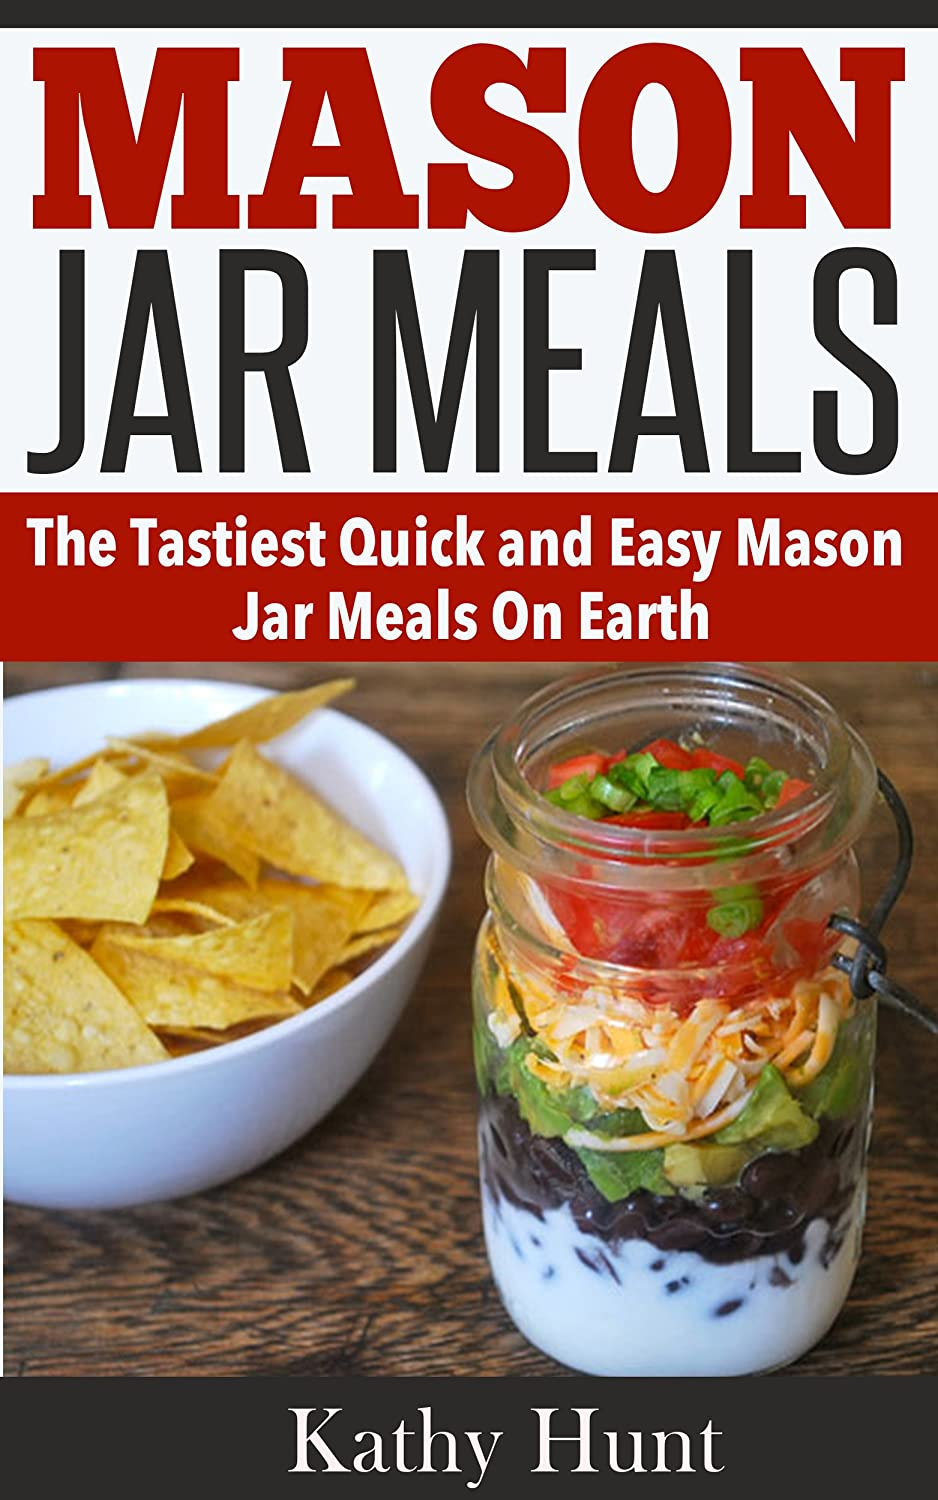 http://www.amazon.com/Mason-Jar-Meals-Includes-Breakfast-ebook/dp/B00PKHUCWE/ref=as_sl_pc_ss_til?tag=lettfromahome-20&linkCode=w01&linkId=B3G4R3WD4W77E2VJ&creativeASIN=B00PKHUCWE